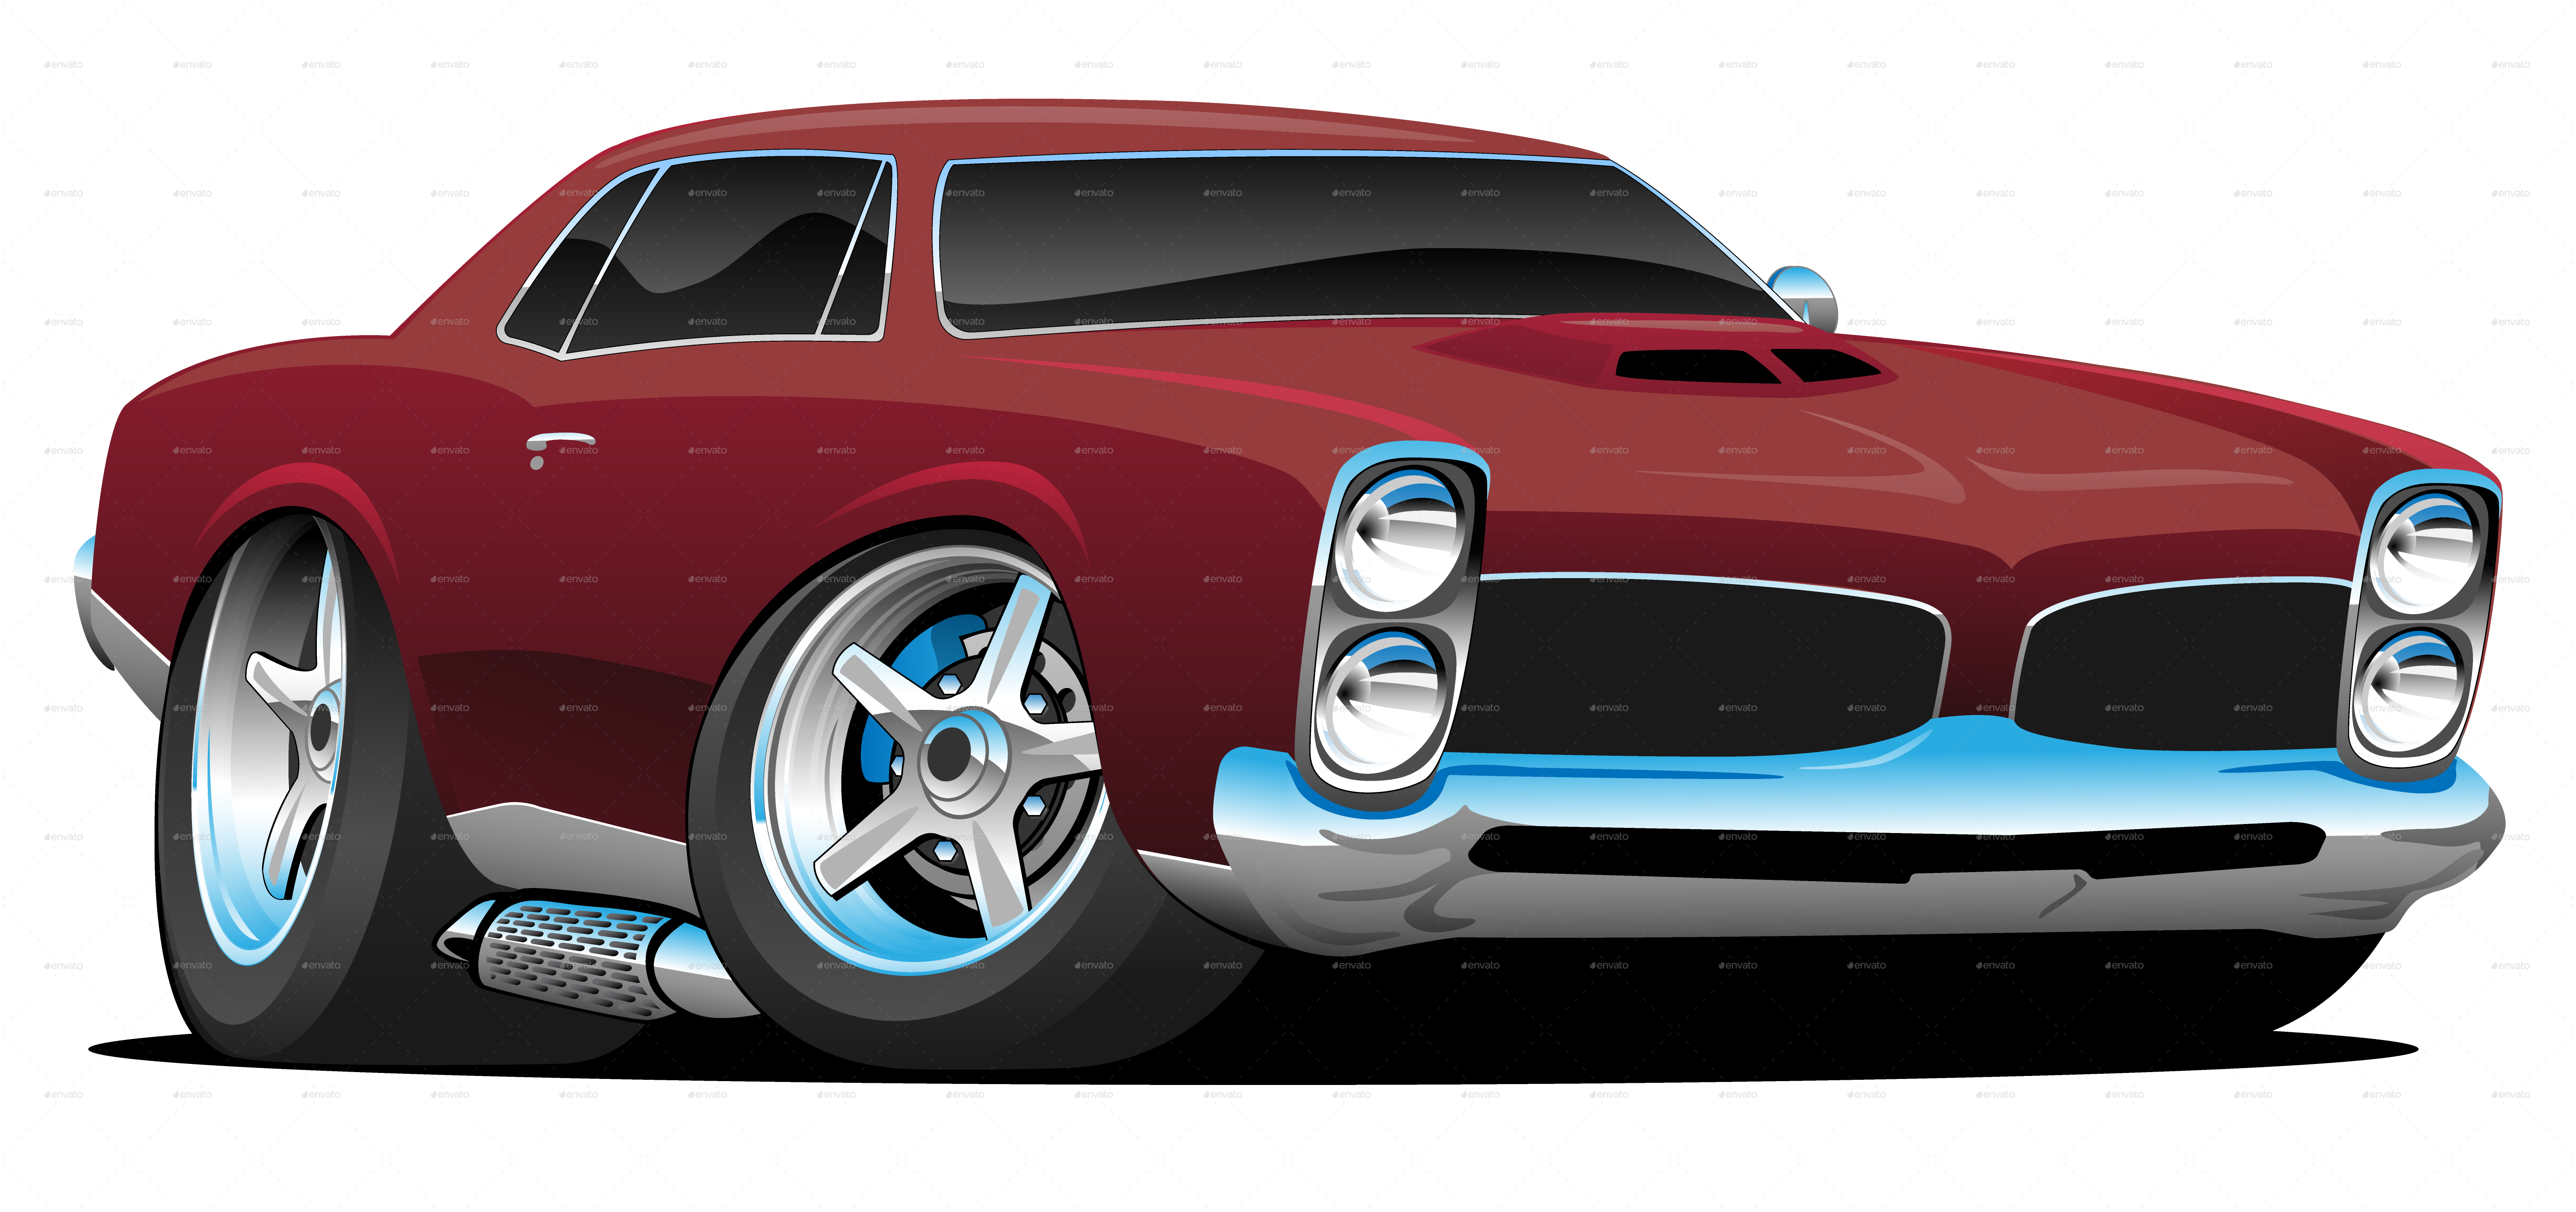 Vintage muscle buick png. Classic american car cartoon